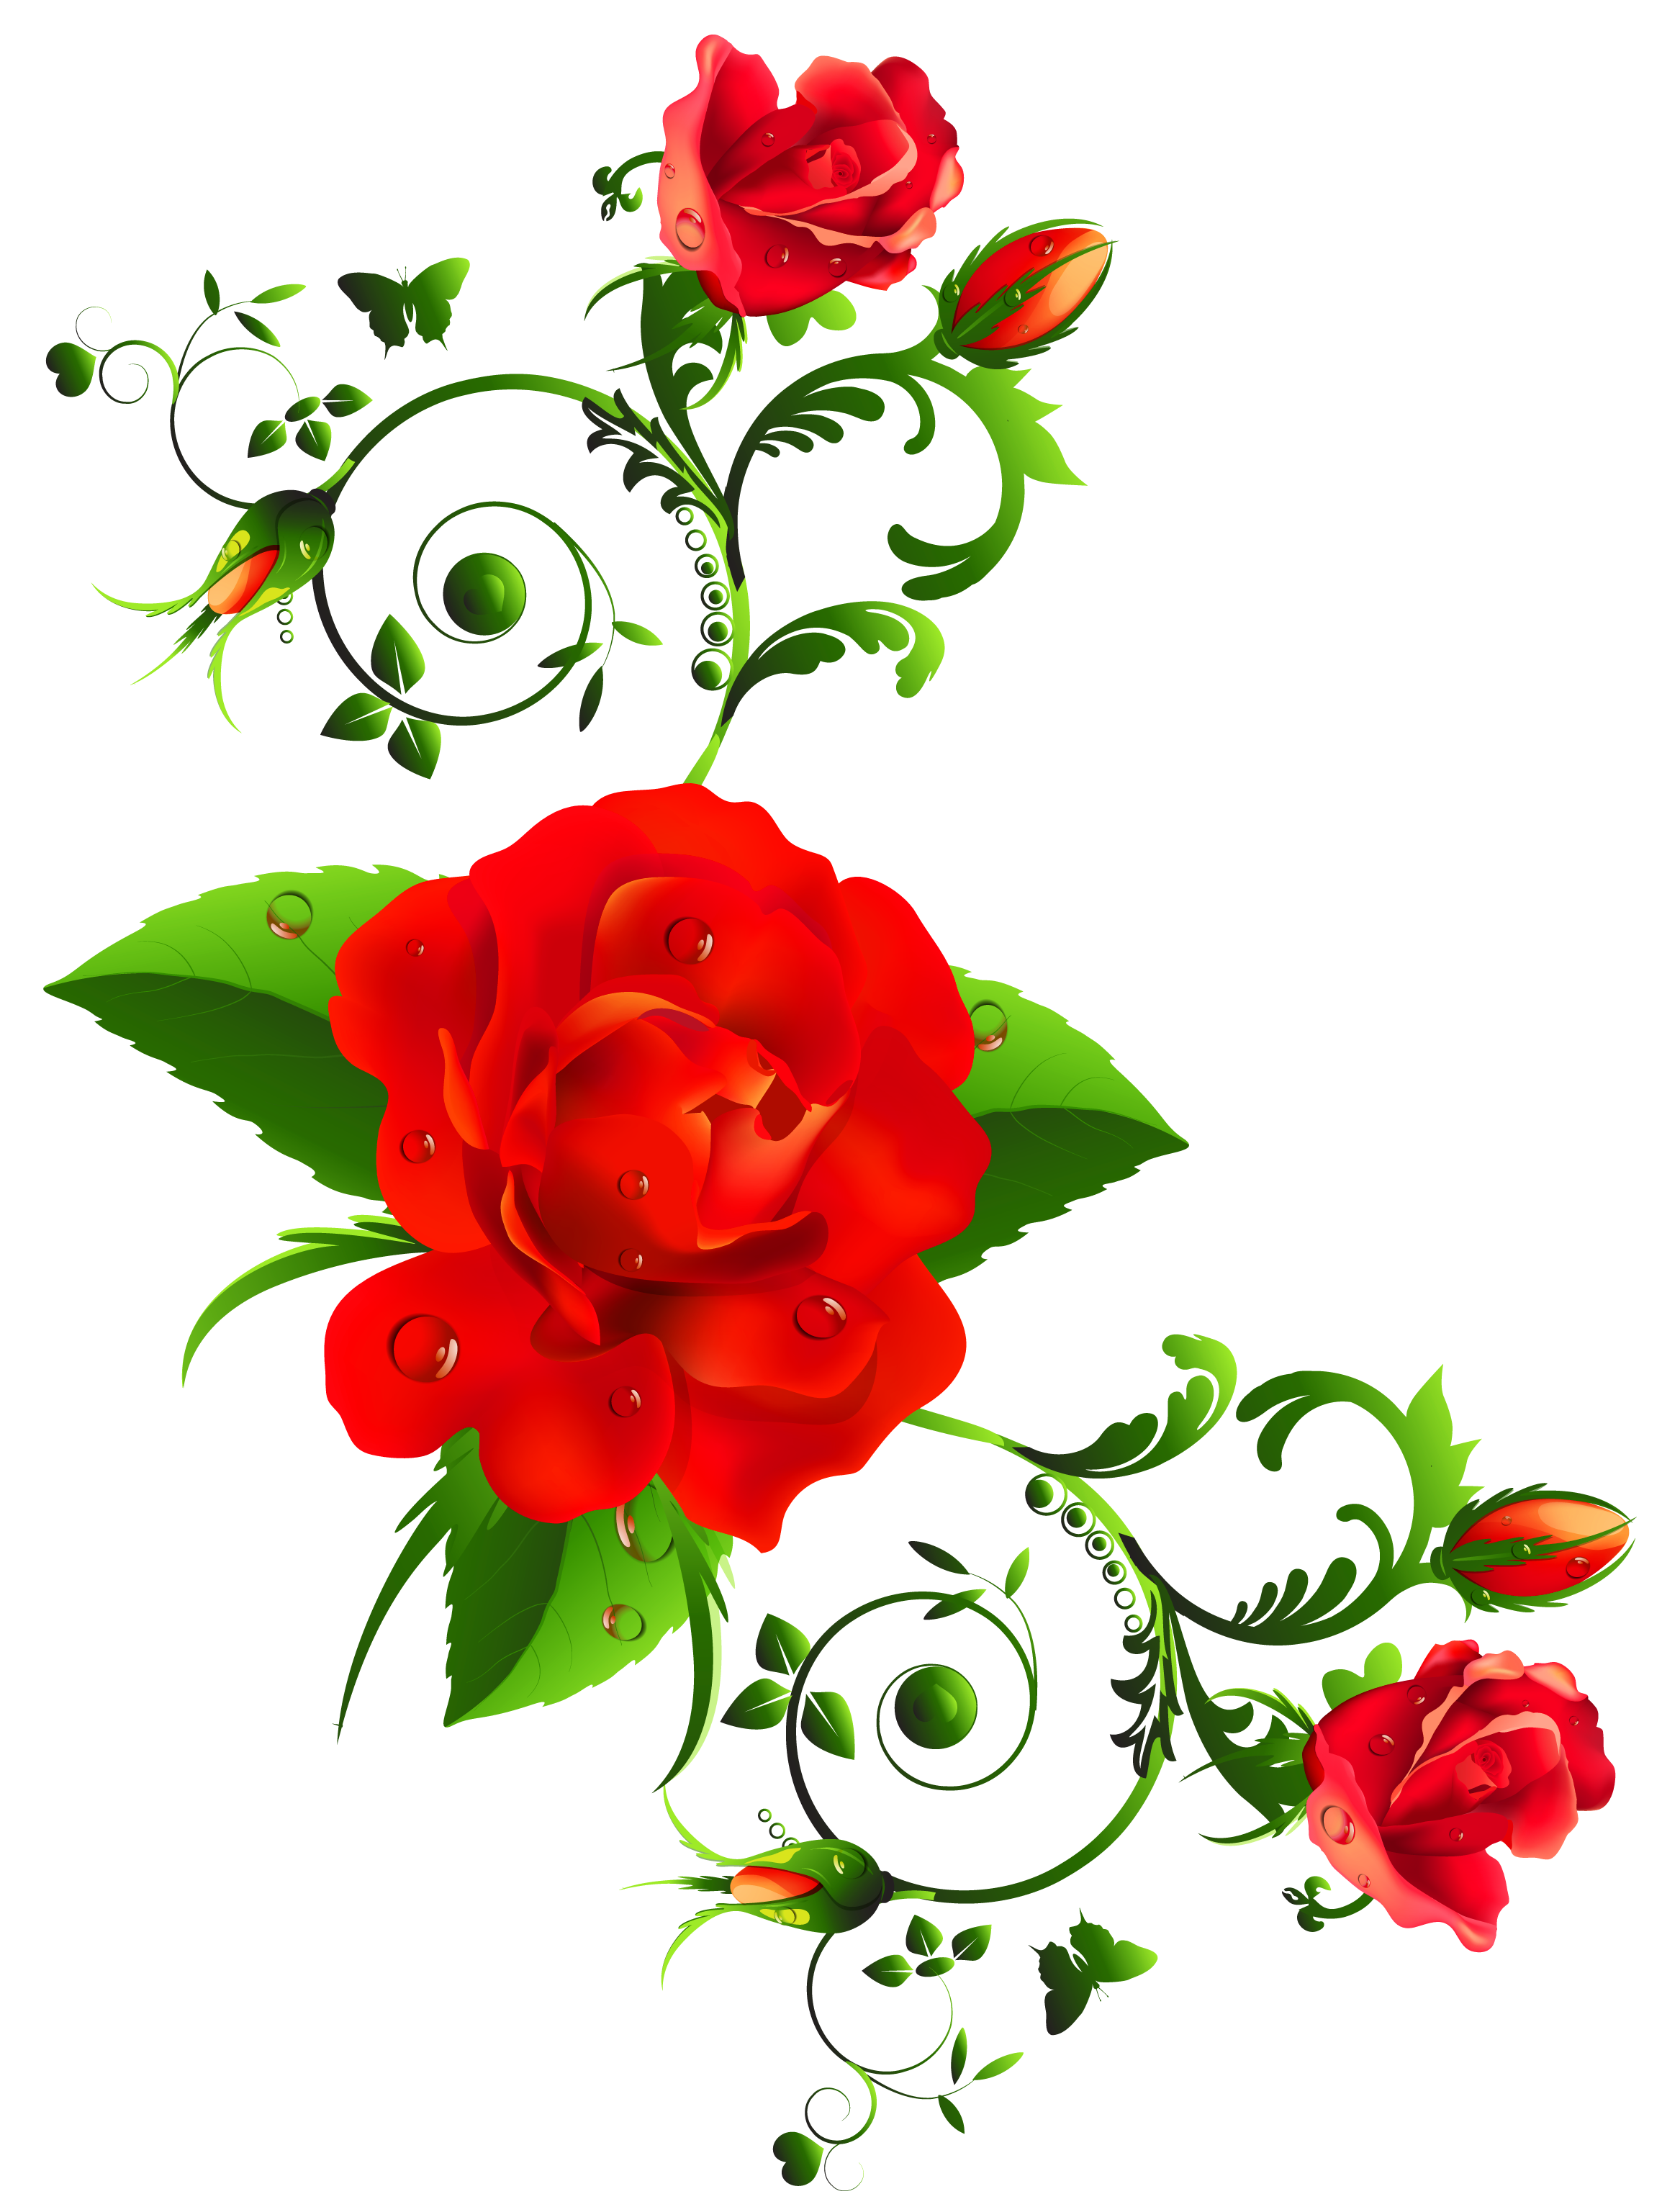 Red Rose clipart decorative #4